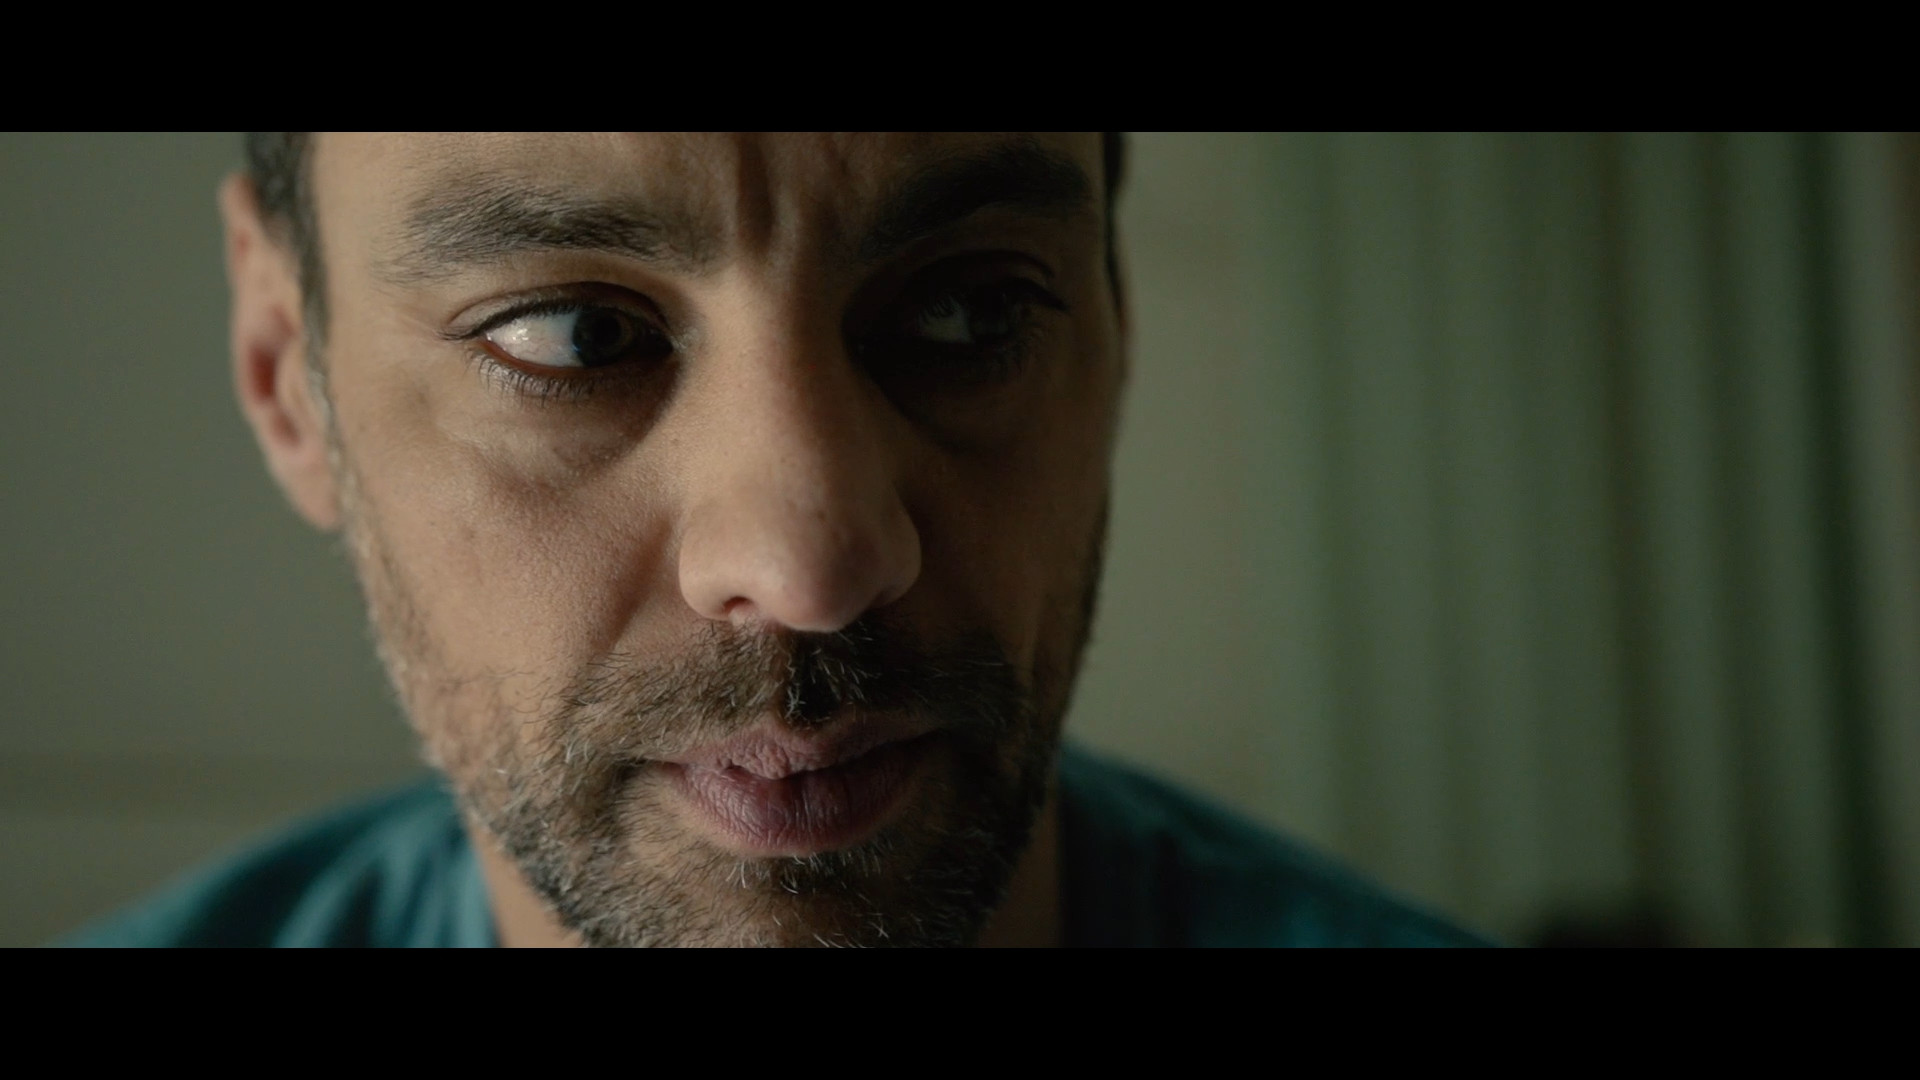 Still from narrative short film Trapped which centres around domestic violence, featuring actor Malcolm Jeffries, shot by Movement Films' own Matthias